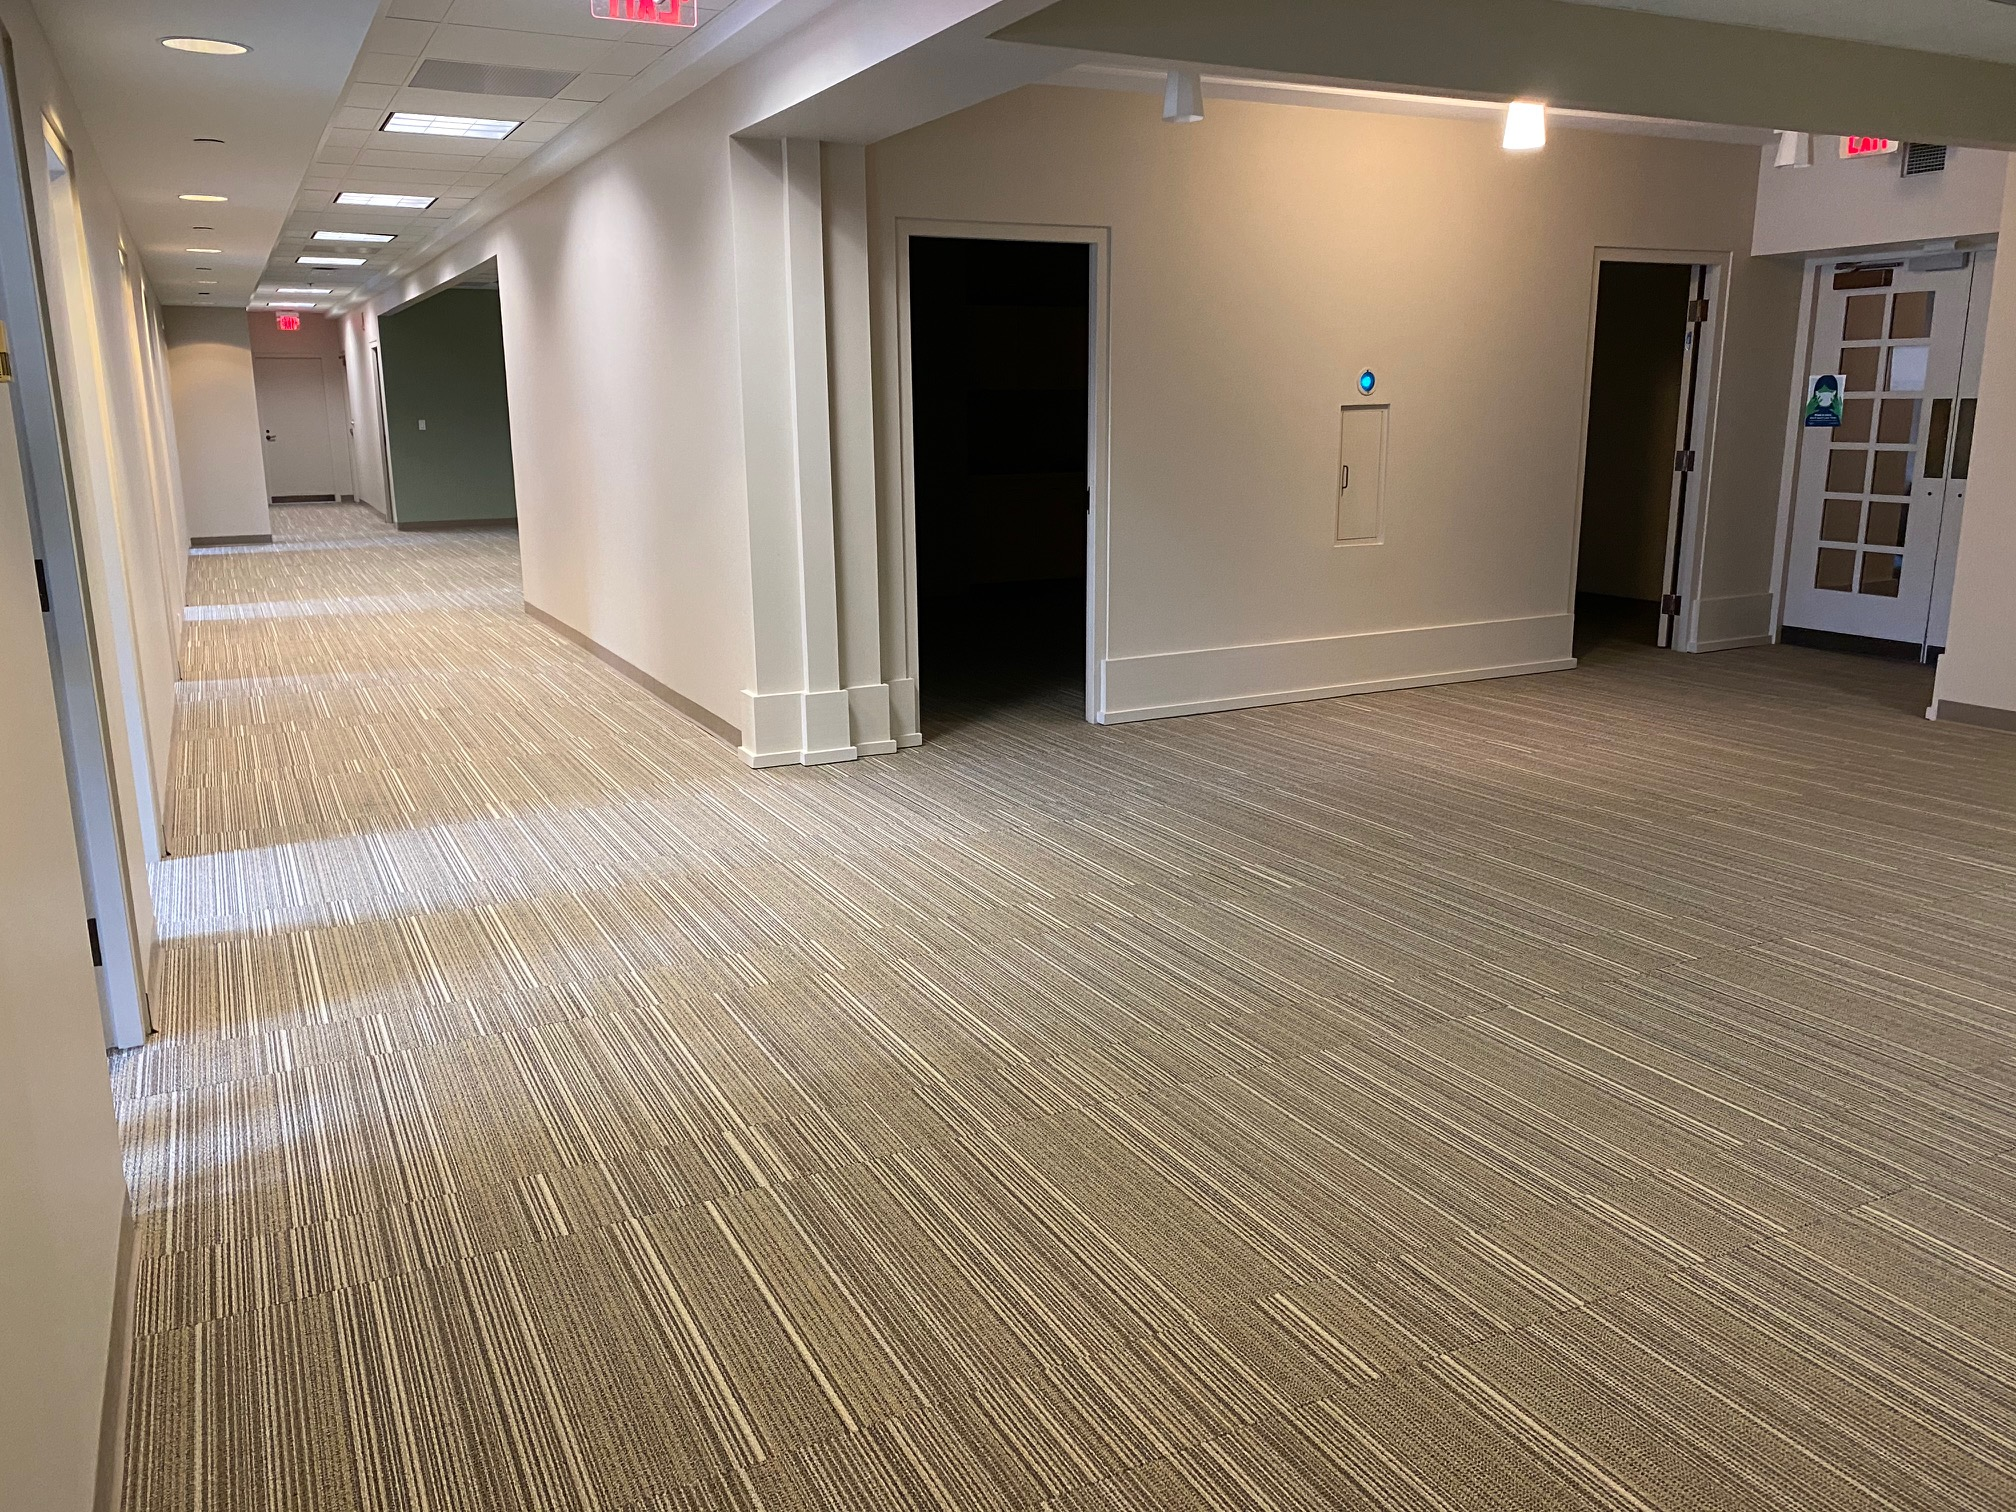 Large hallway area in a building